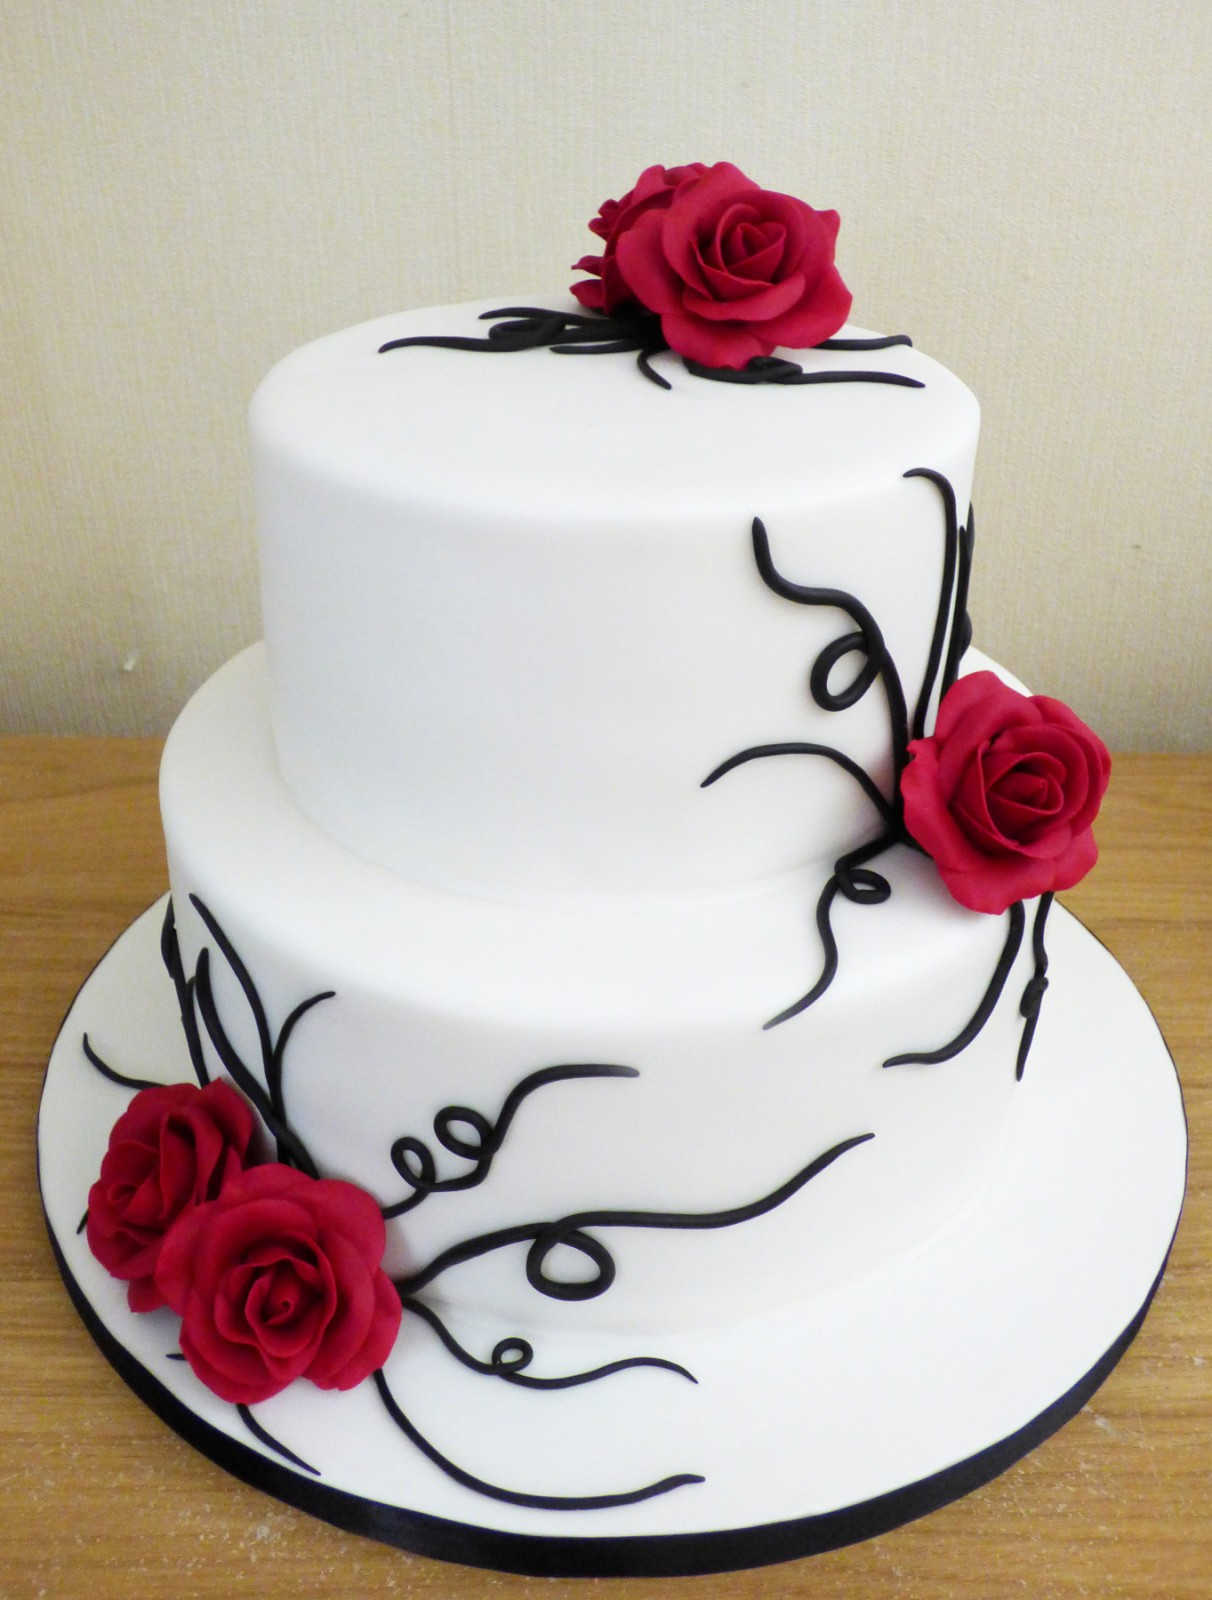 2 Tier Black And White Wedding Cake With Red Roses Susie